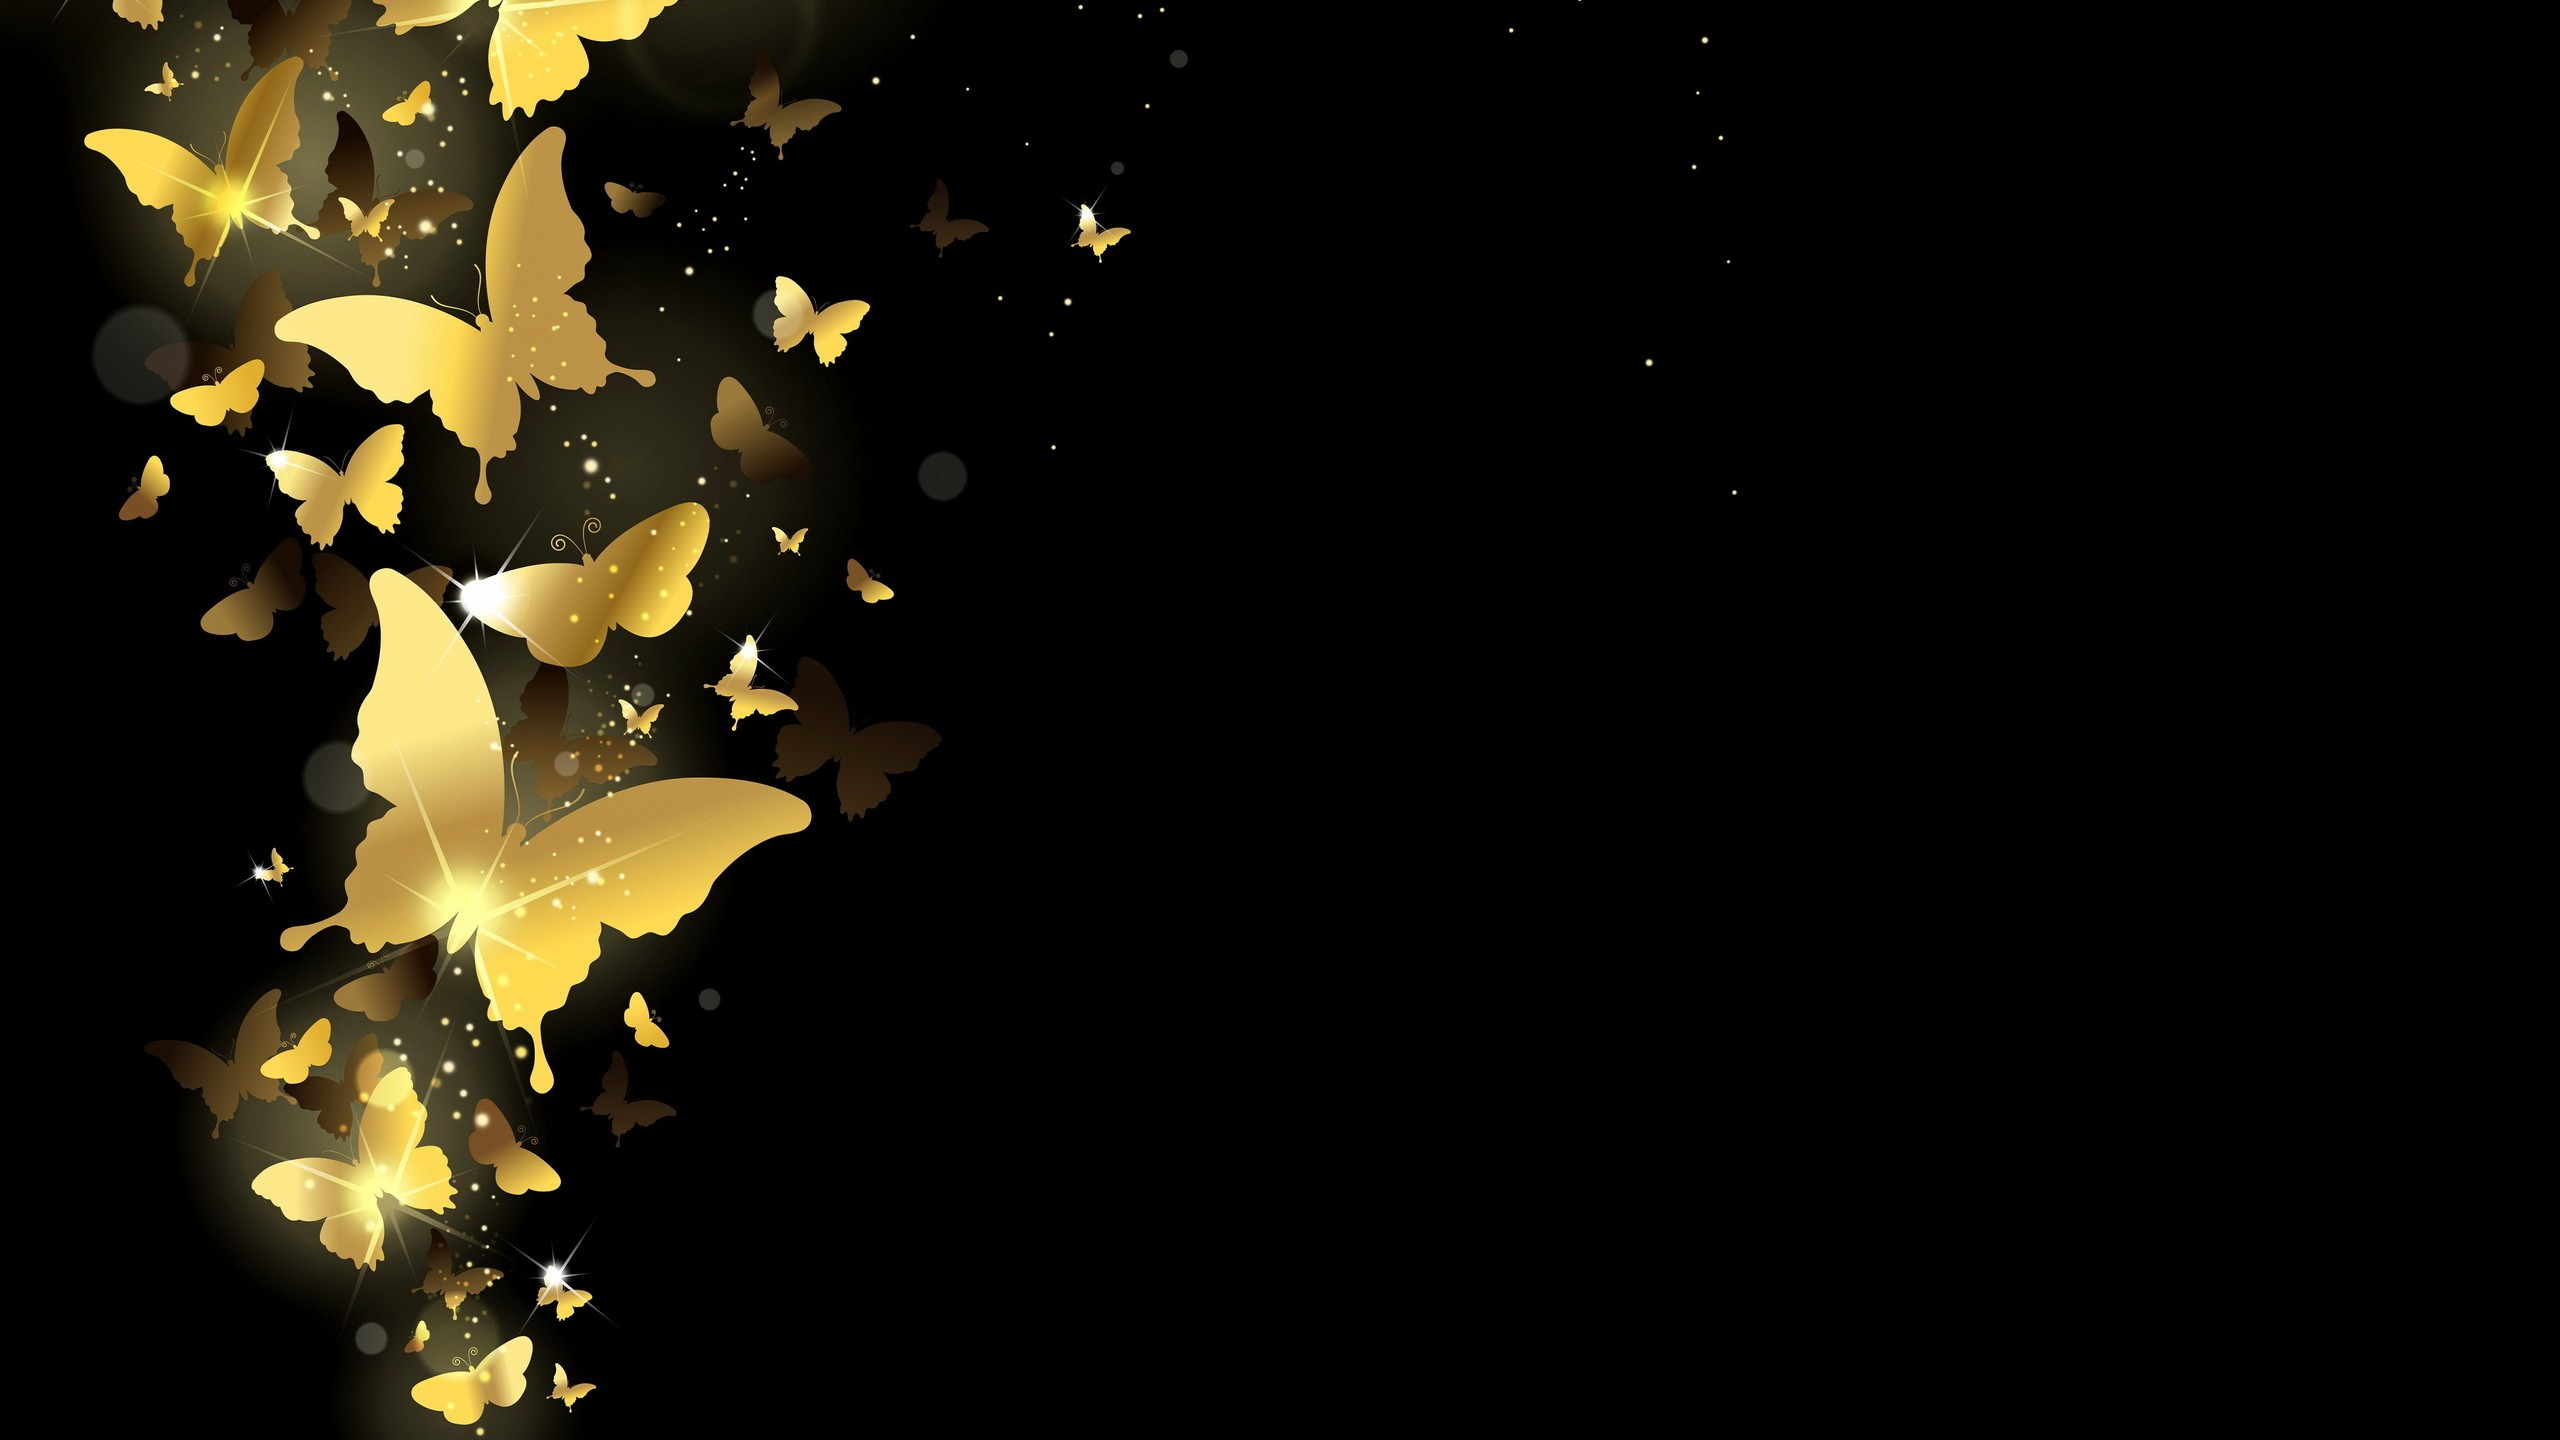 Gold Sparkle Background 183 ① Download Free Awesome Full Hd